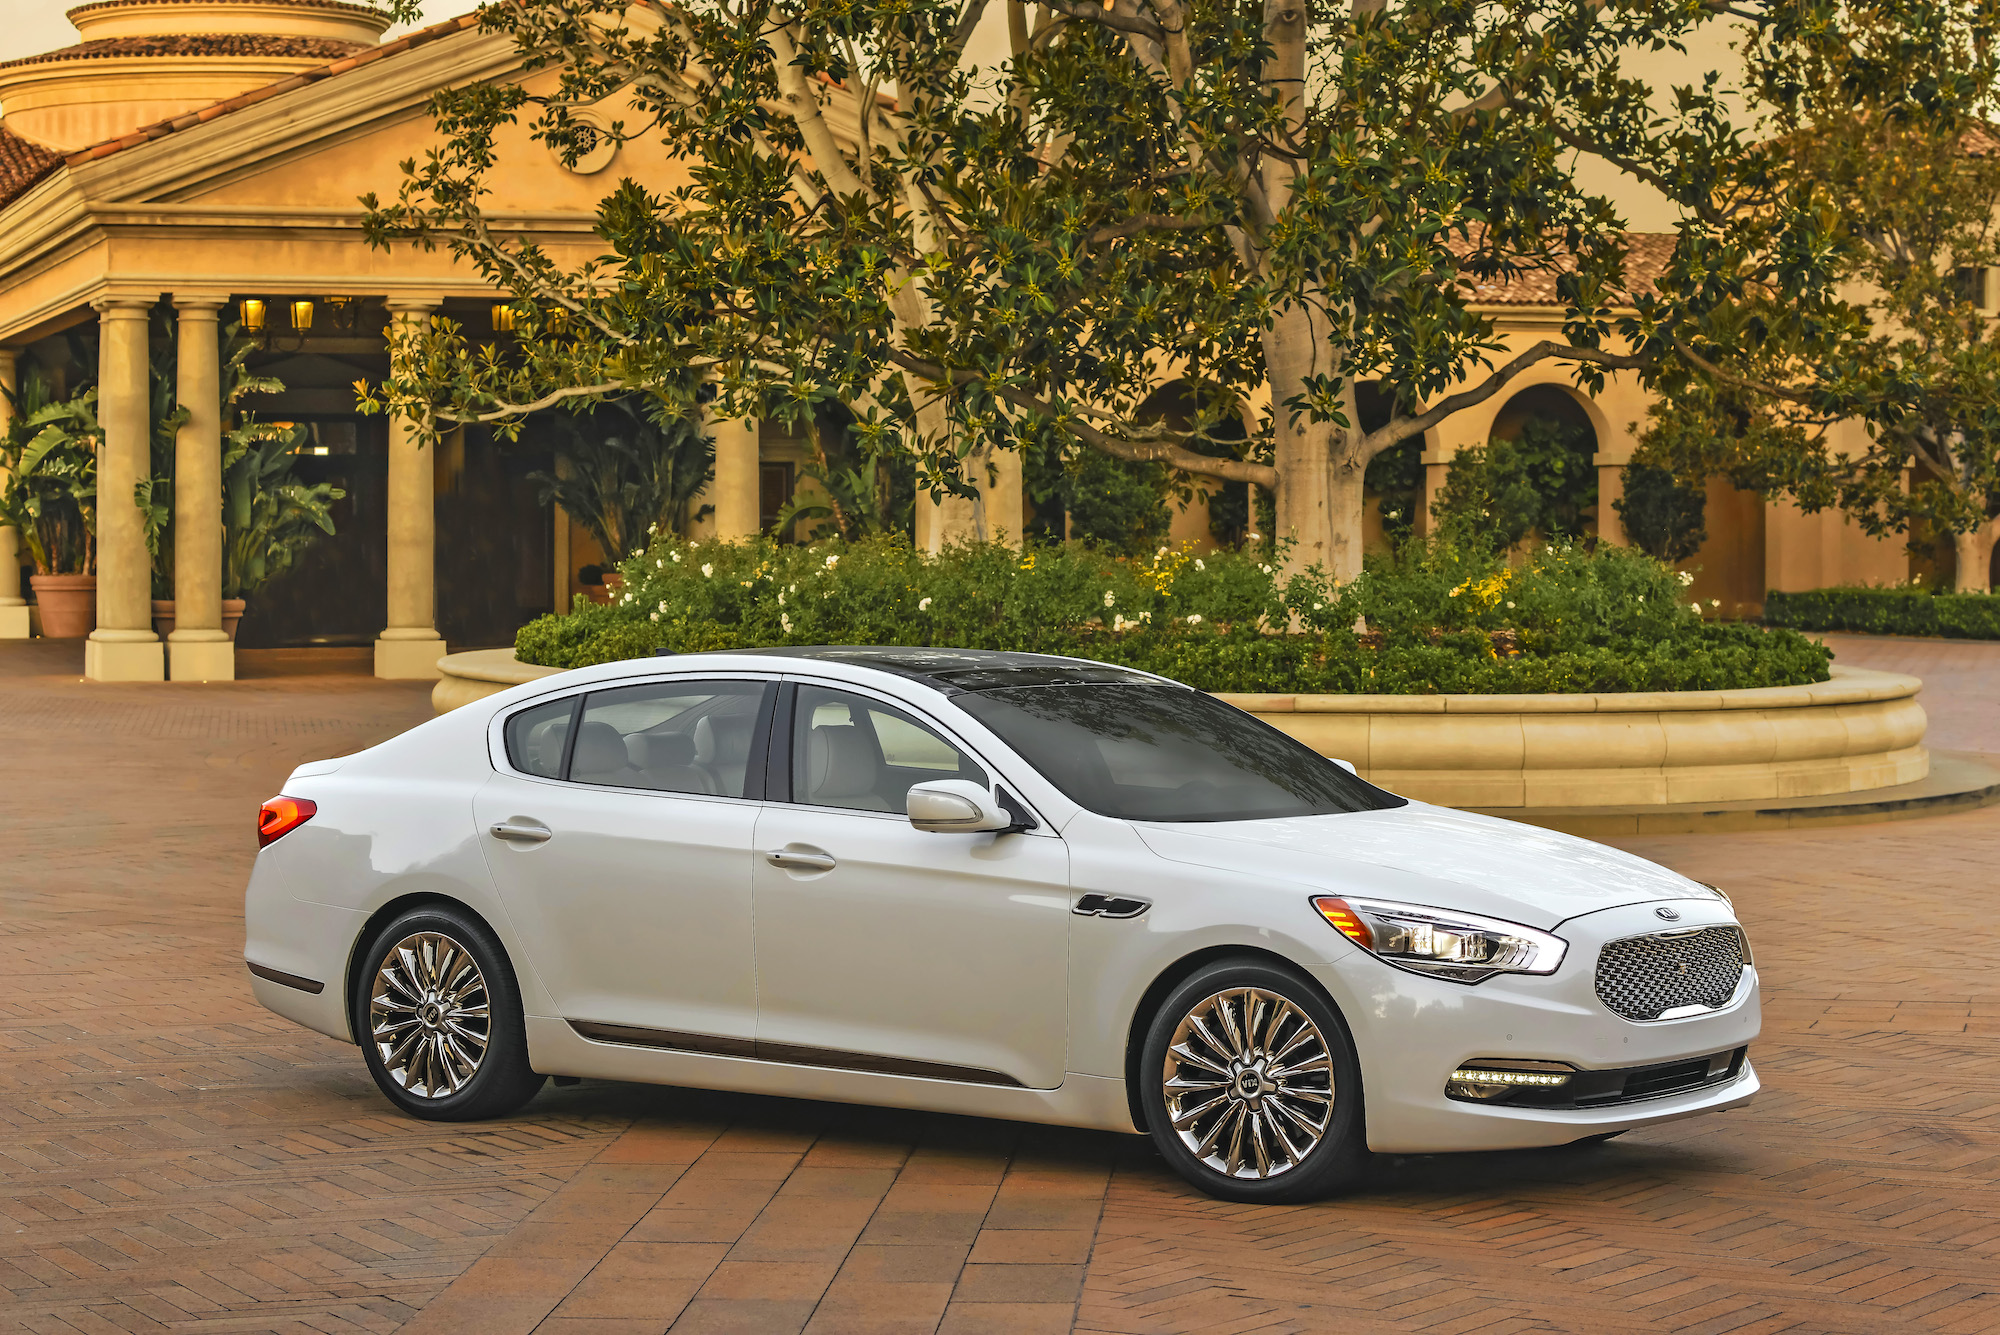 Land Rover Louisville >> 2015 Kia K900 Review, Ratings, Specs, Prices, and Photos ...